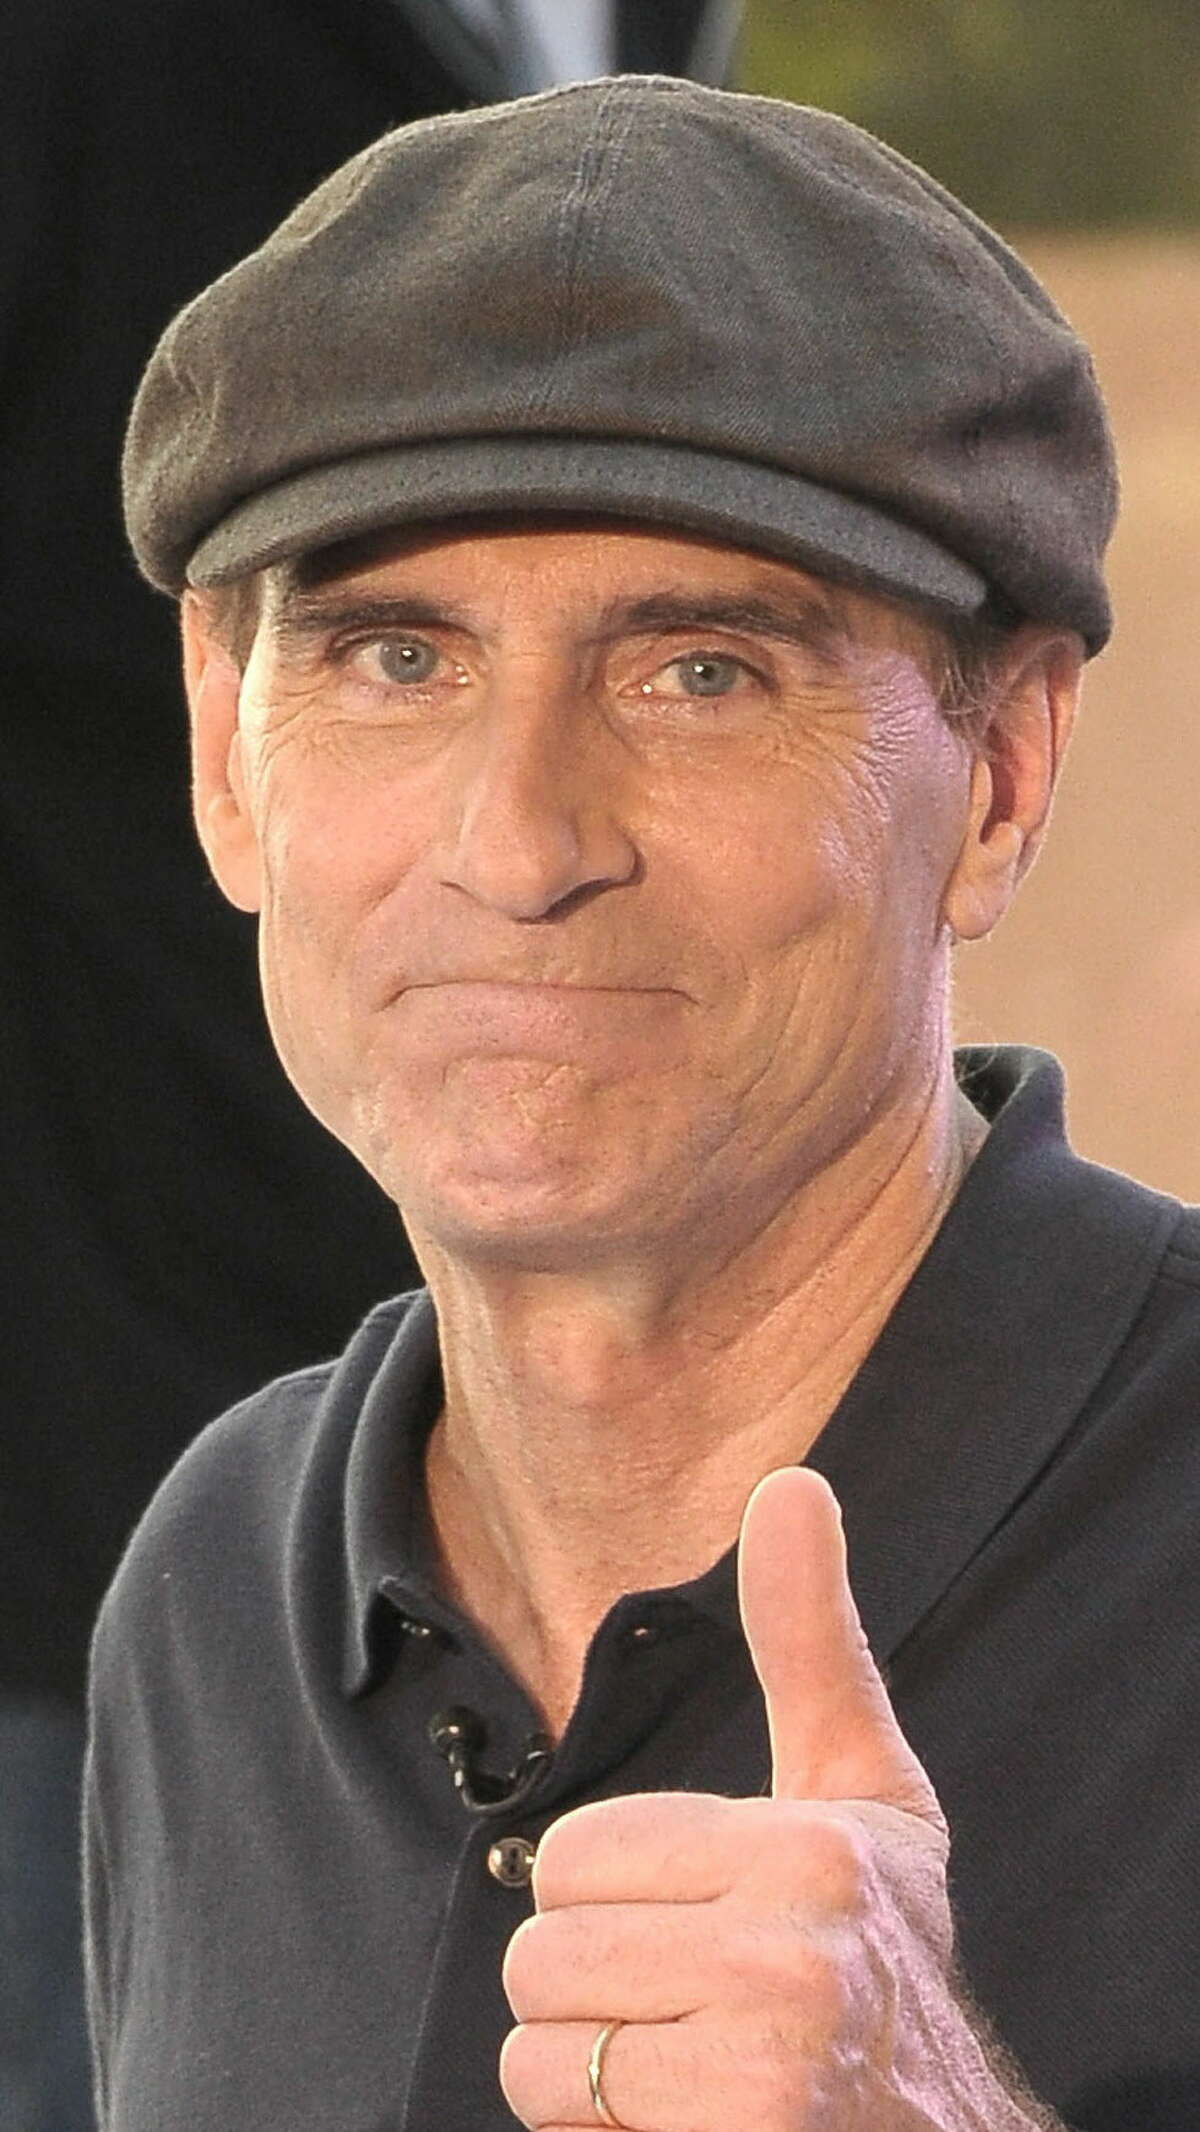 NEW YORK - JUNE 18: Musician James Taylor poses following a performance on NBC's